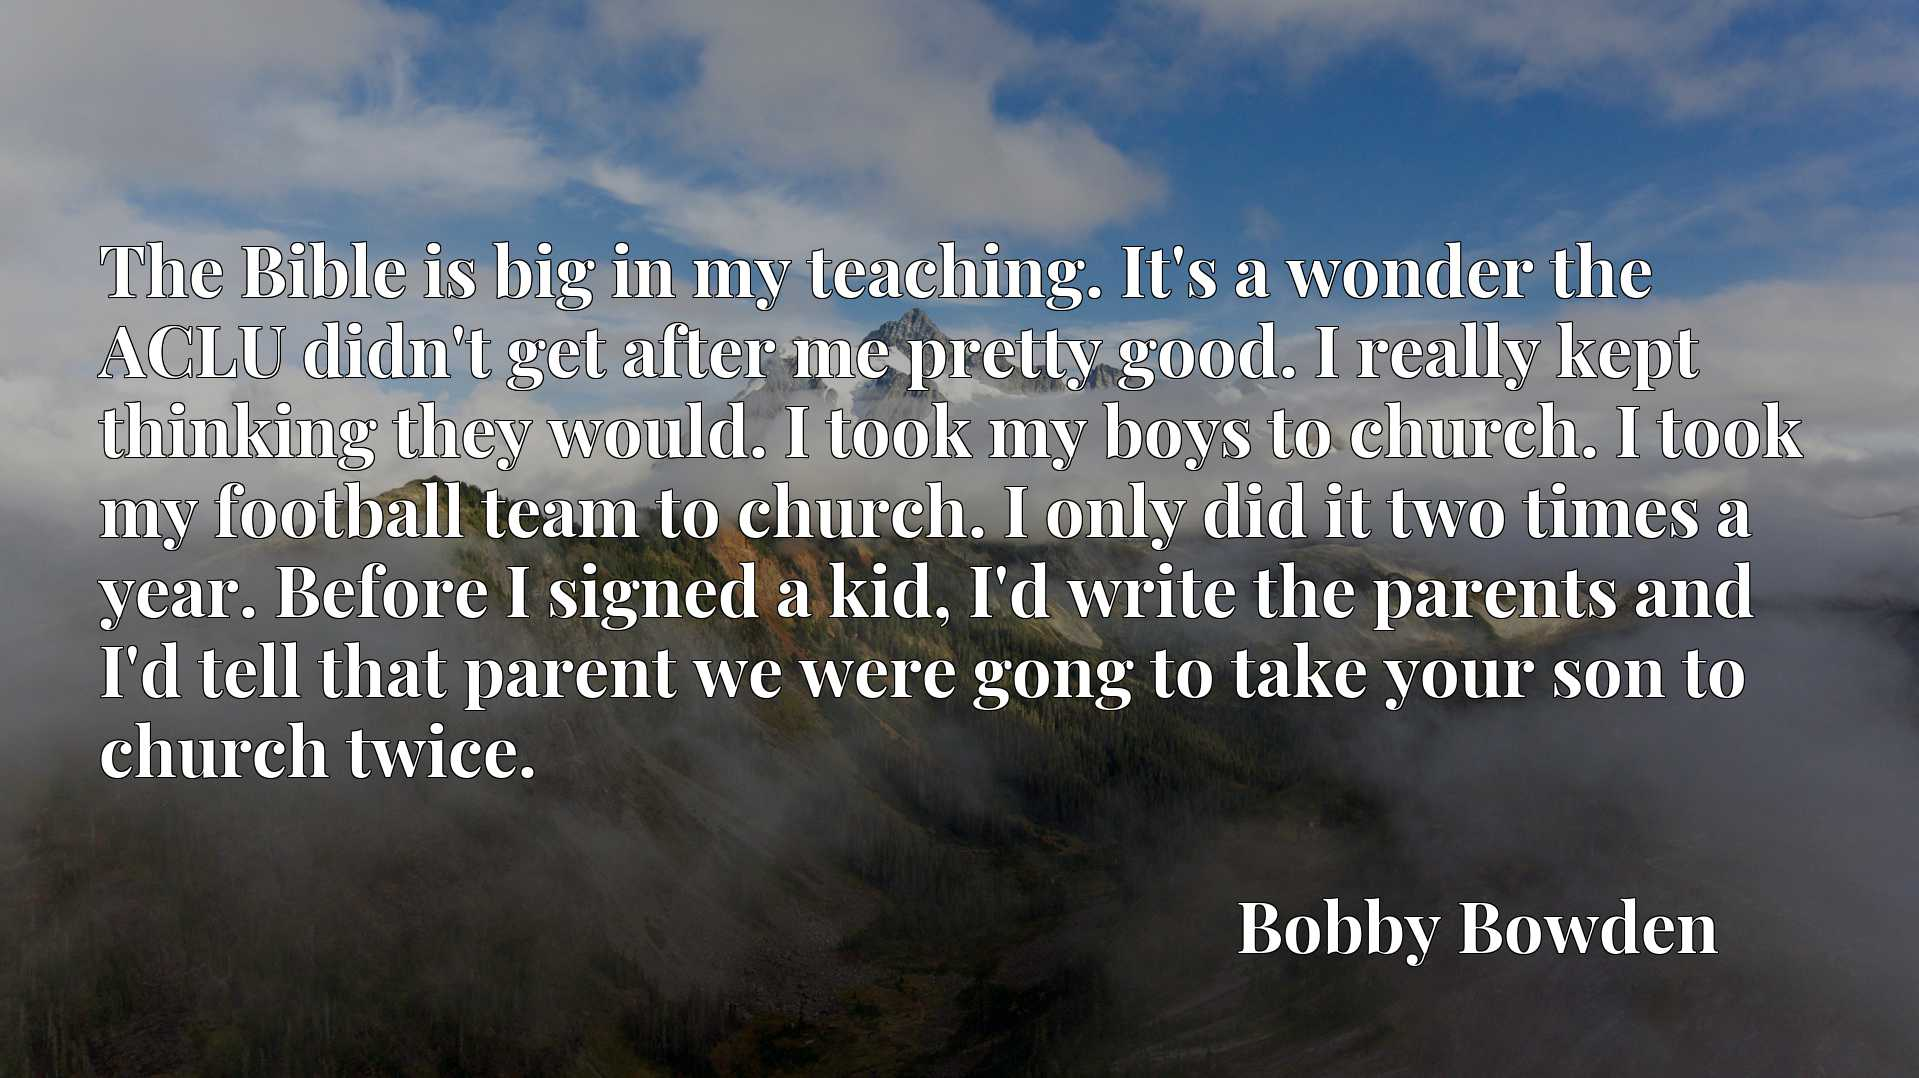 The Bible is big in my teaching. It's a wonder the ACLU didn't get after me pretty good. I really kept thinking they would. I took my boys to church. I took my football team to church. I only did it two times a year. Before I signed a kid, I'd write the parents and I'd tell that parent we were gong to take your son to church twice.